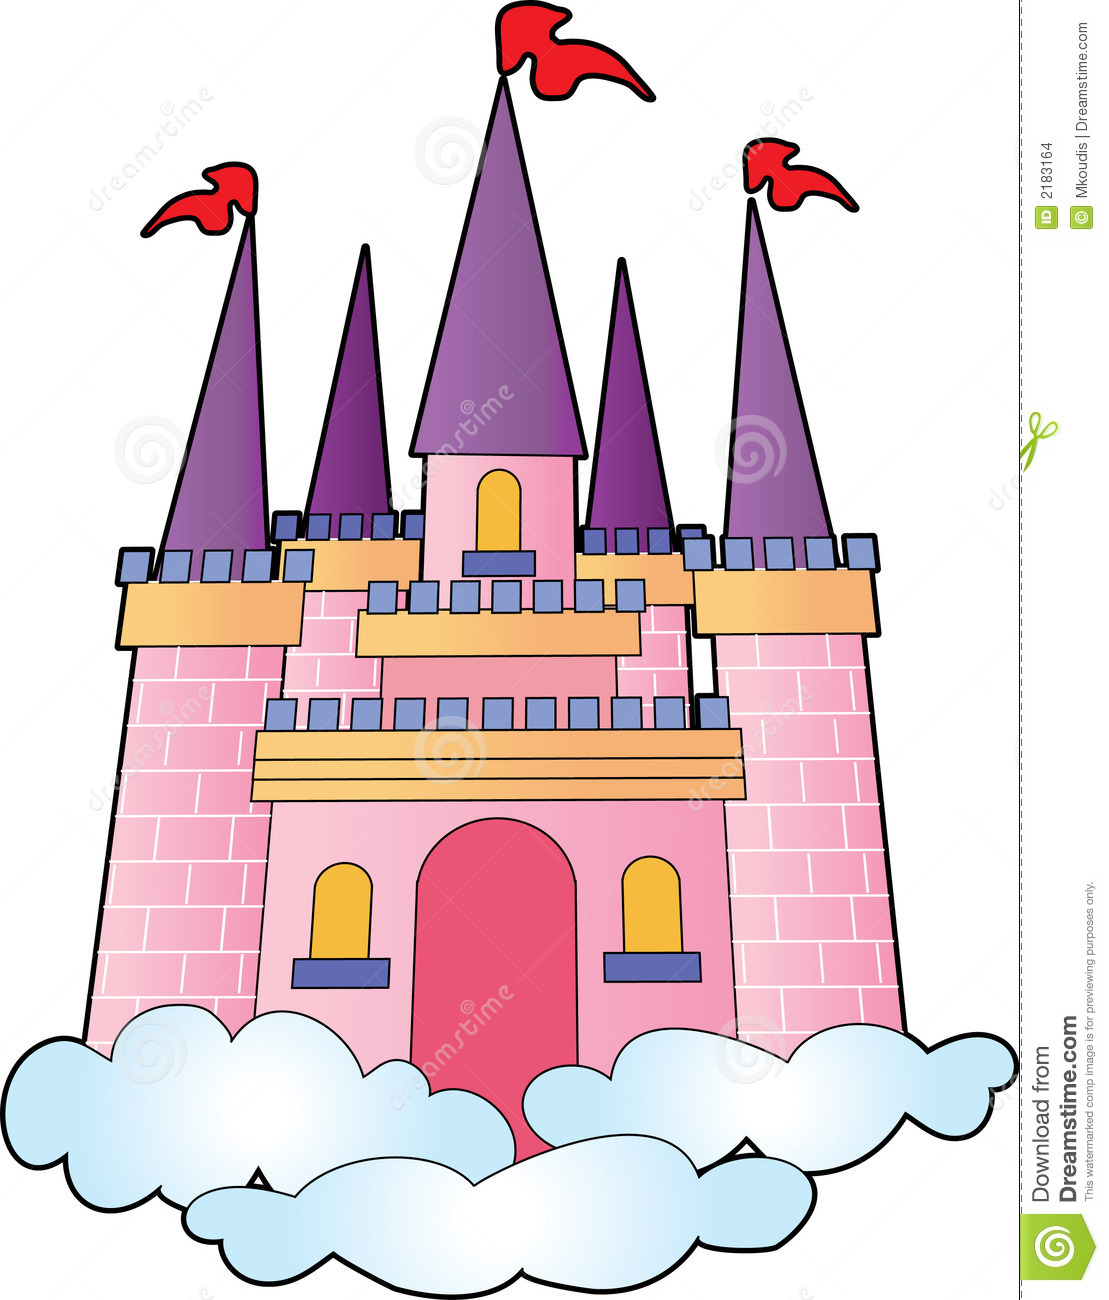 Bouncy free download best. Palace clipart castle on cloud